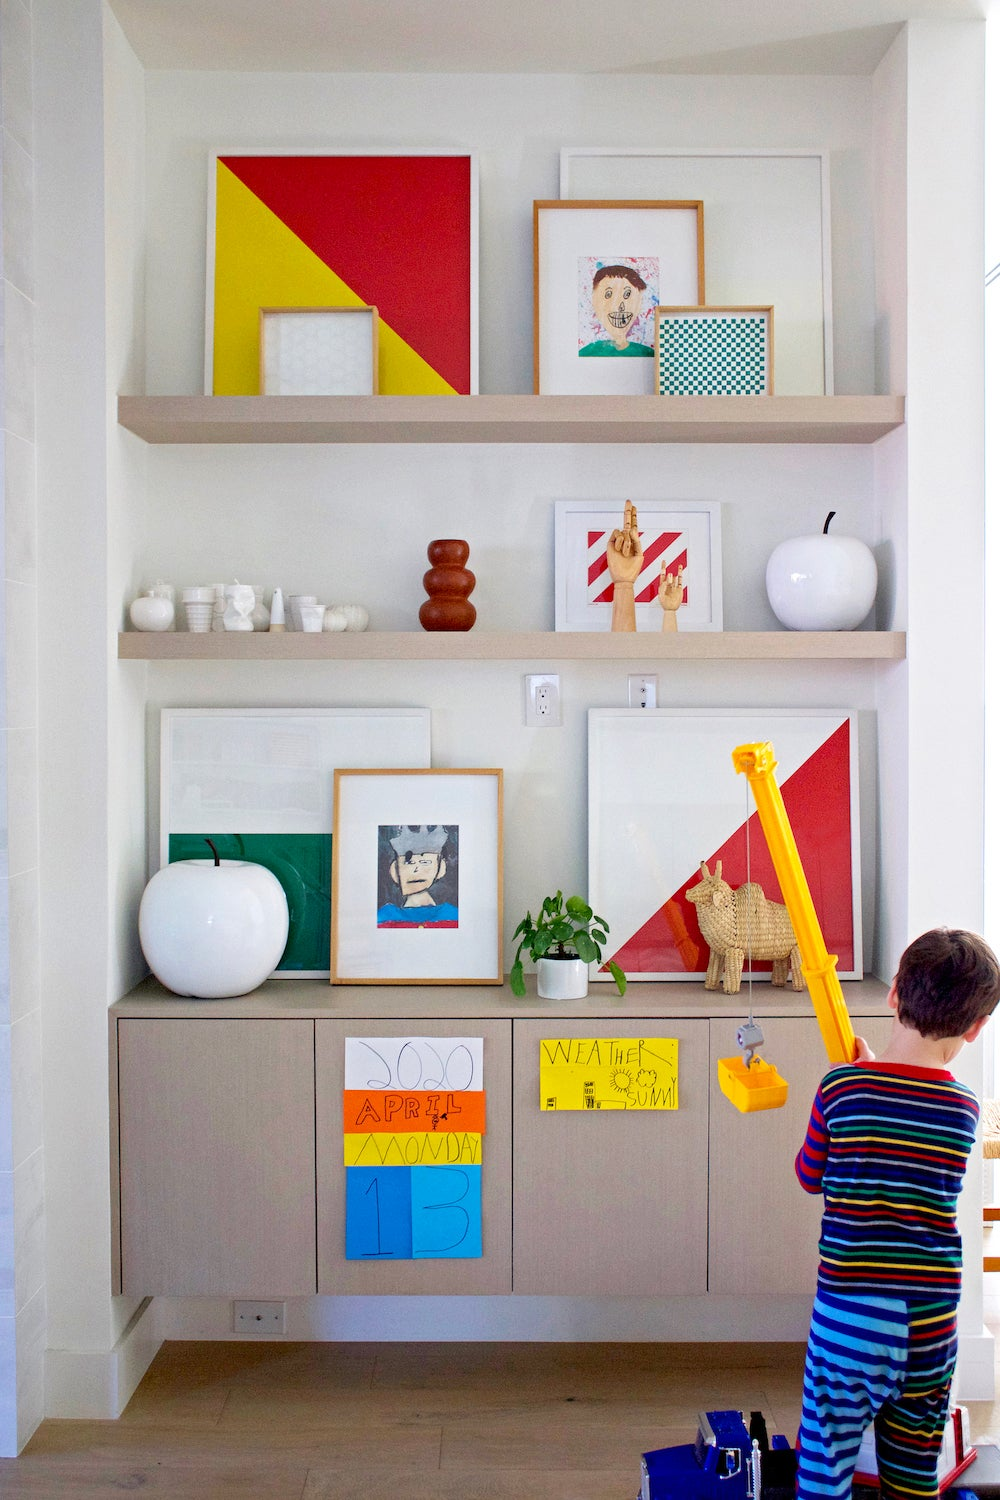 boy playing with toy in front of shelves